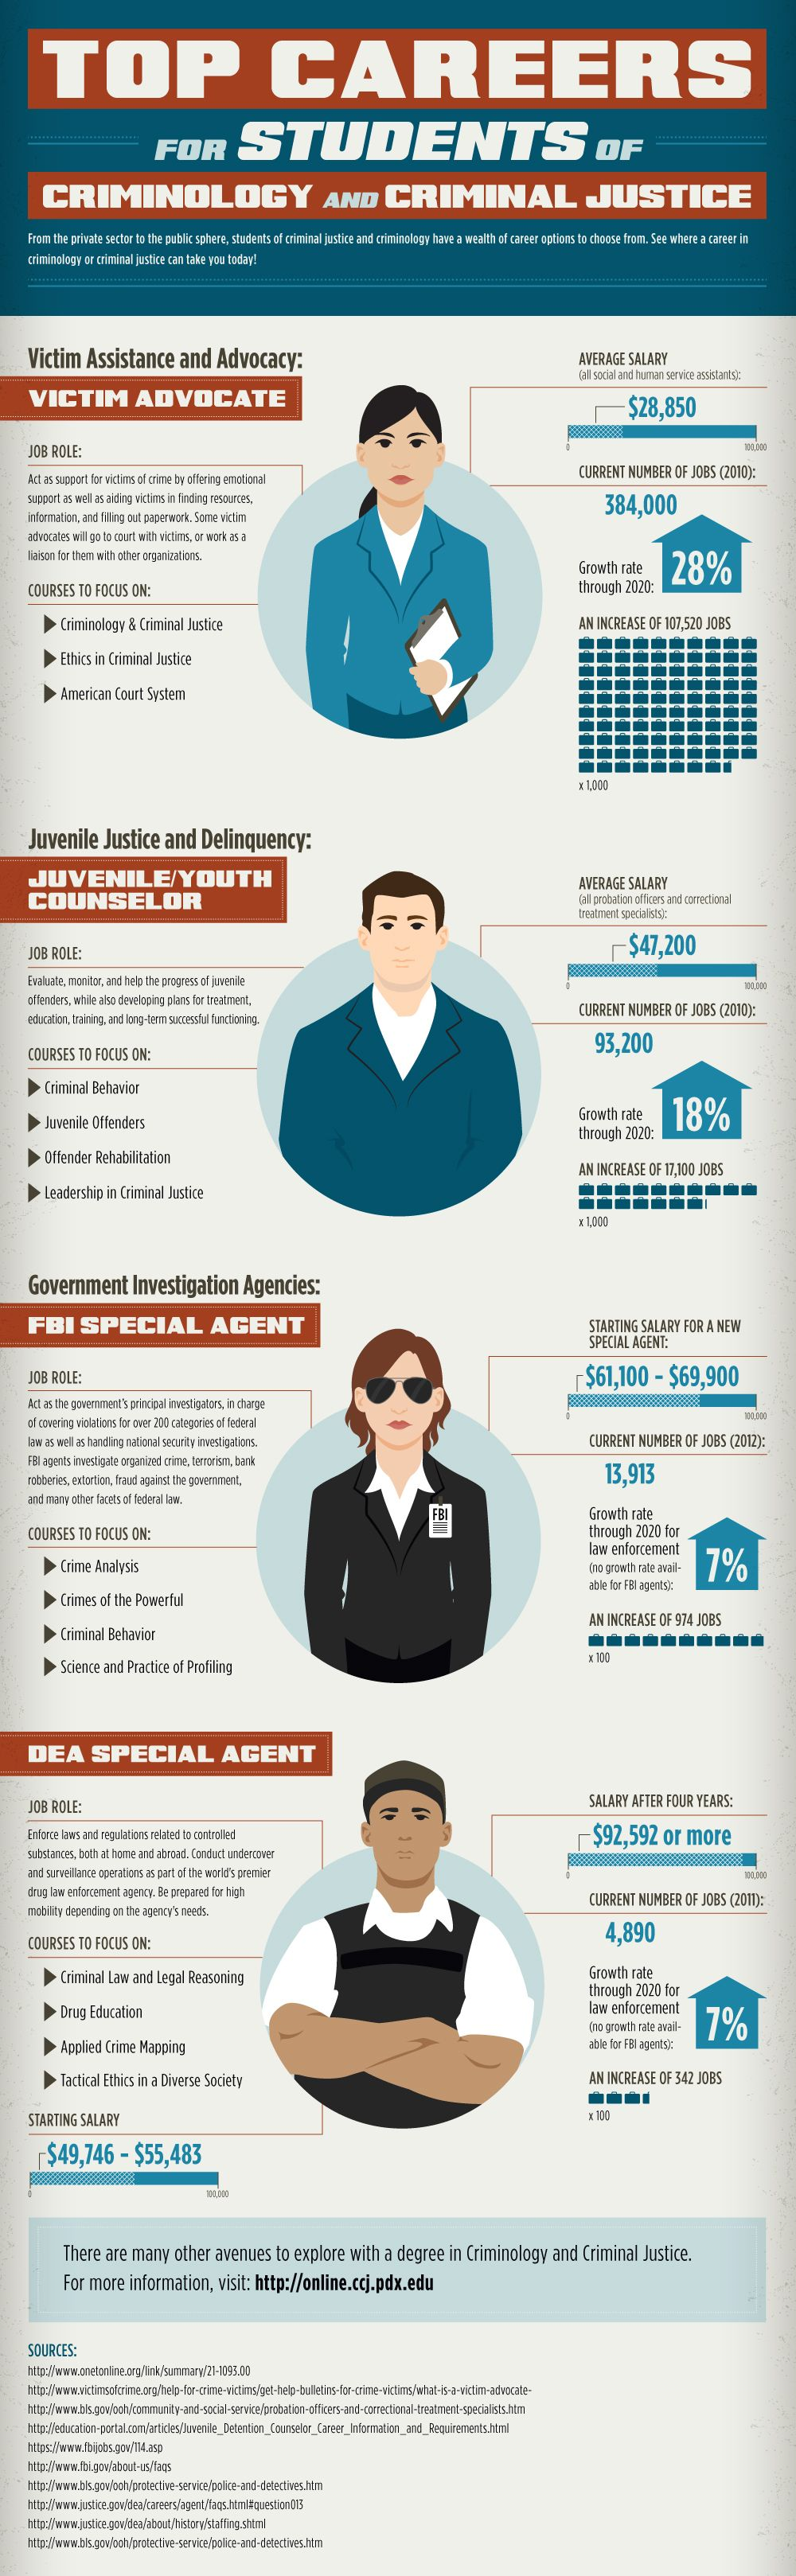 Top Careers for Students of Criminology and Criminal Justice #Infographic